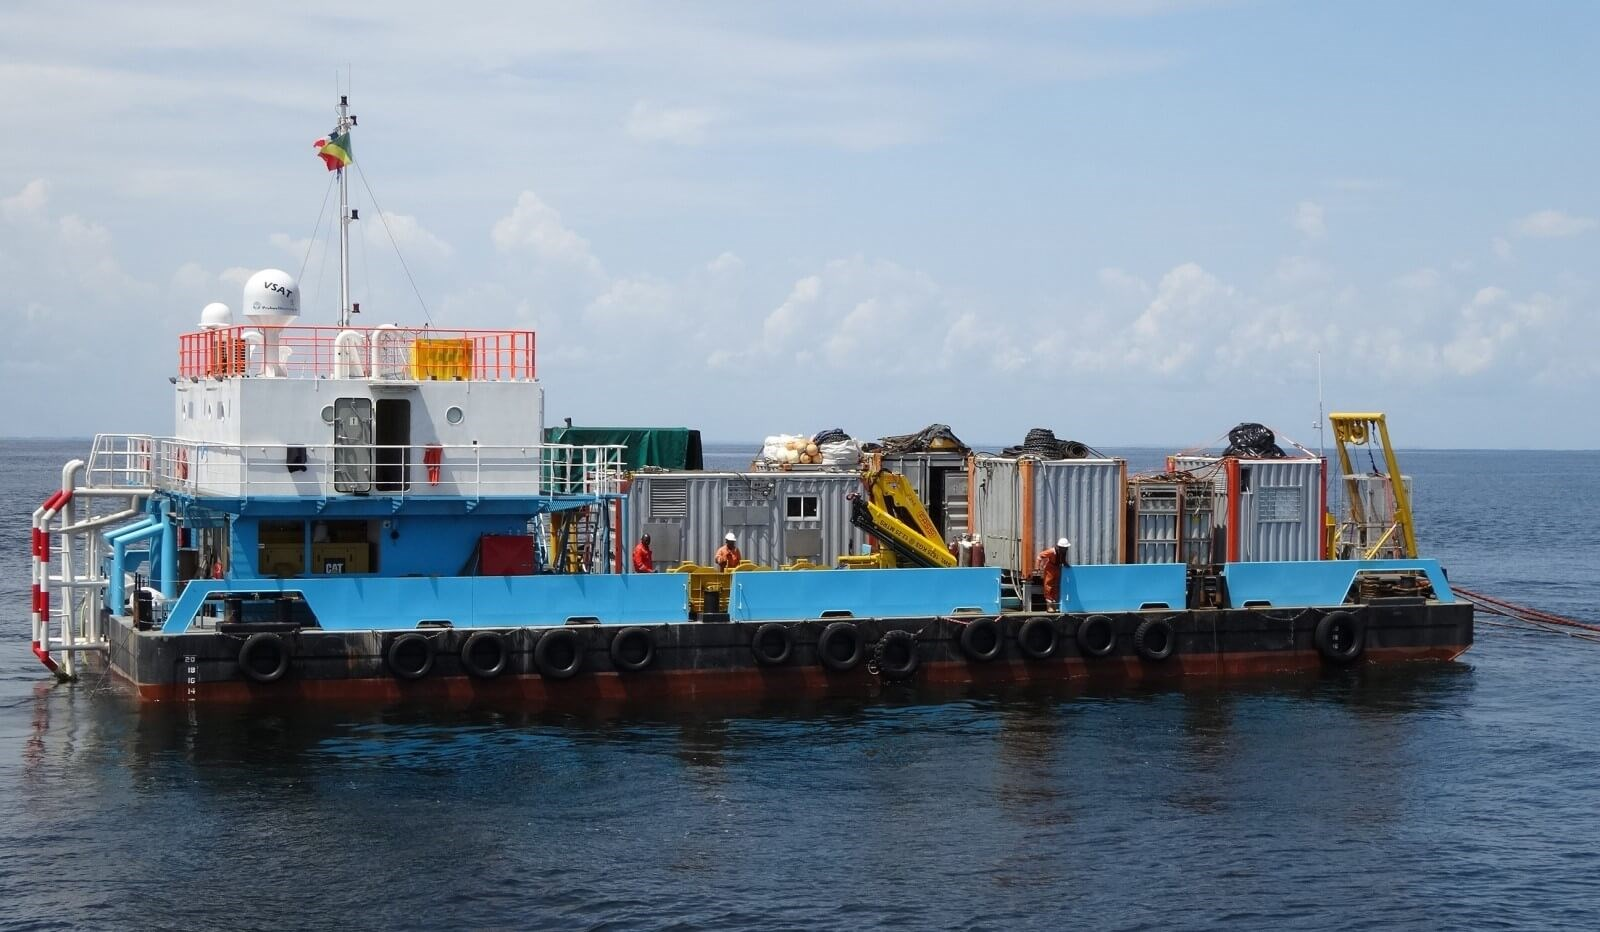 accommodation barge for sale 07600 (12)